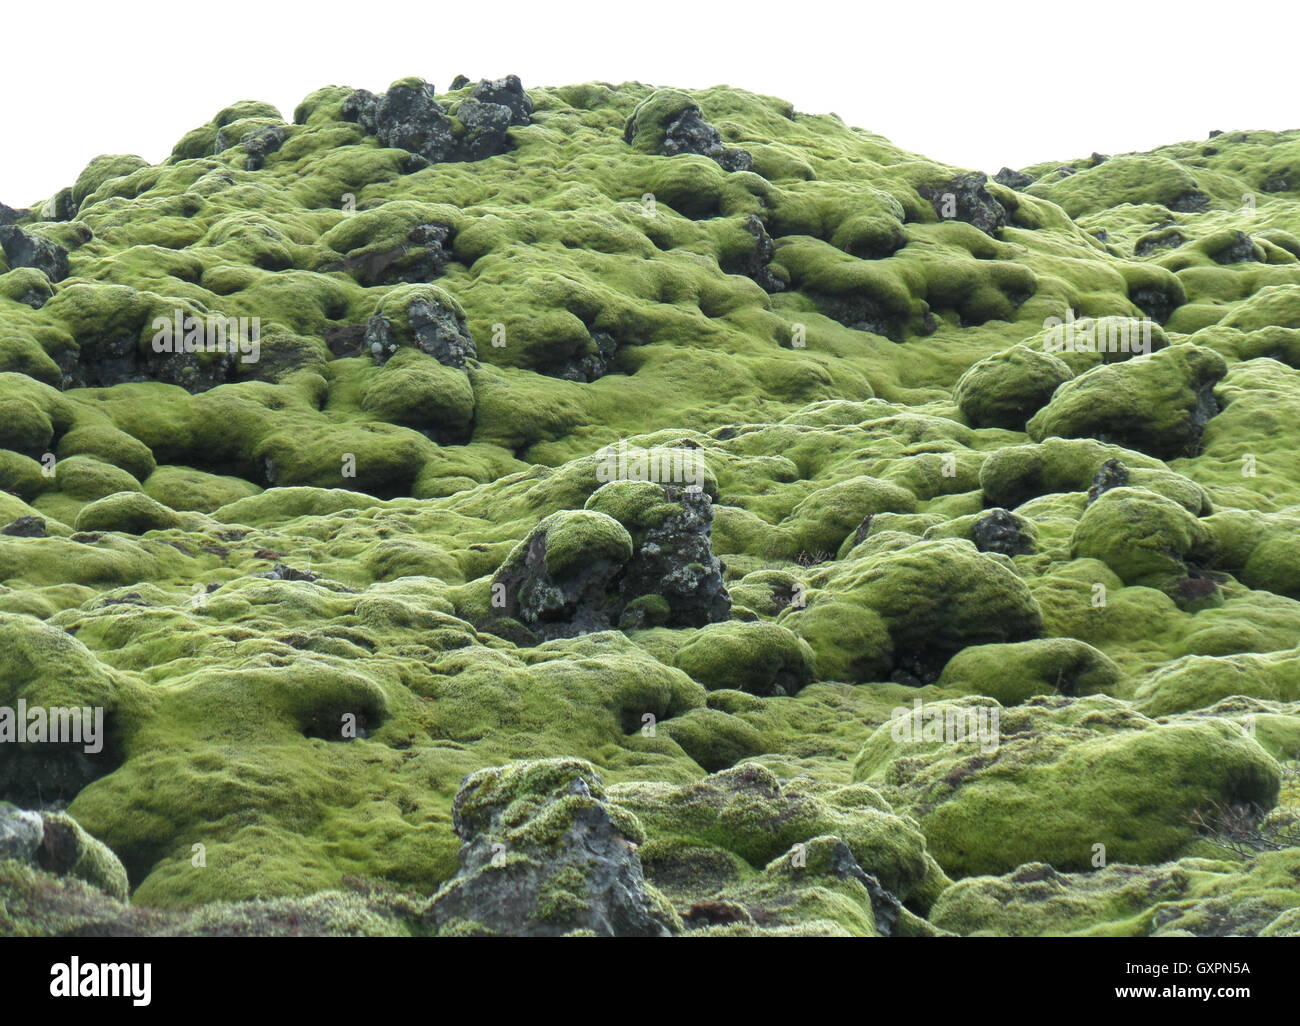 Amazing Green Mossy Lava Field in South Iceland, Background - Stock Image